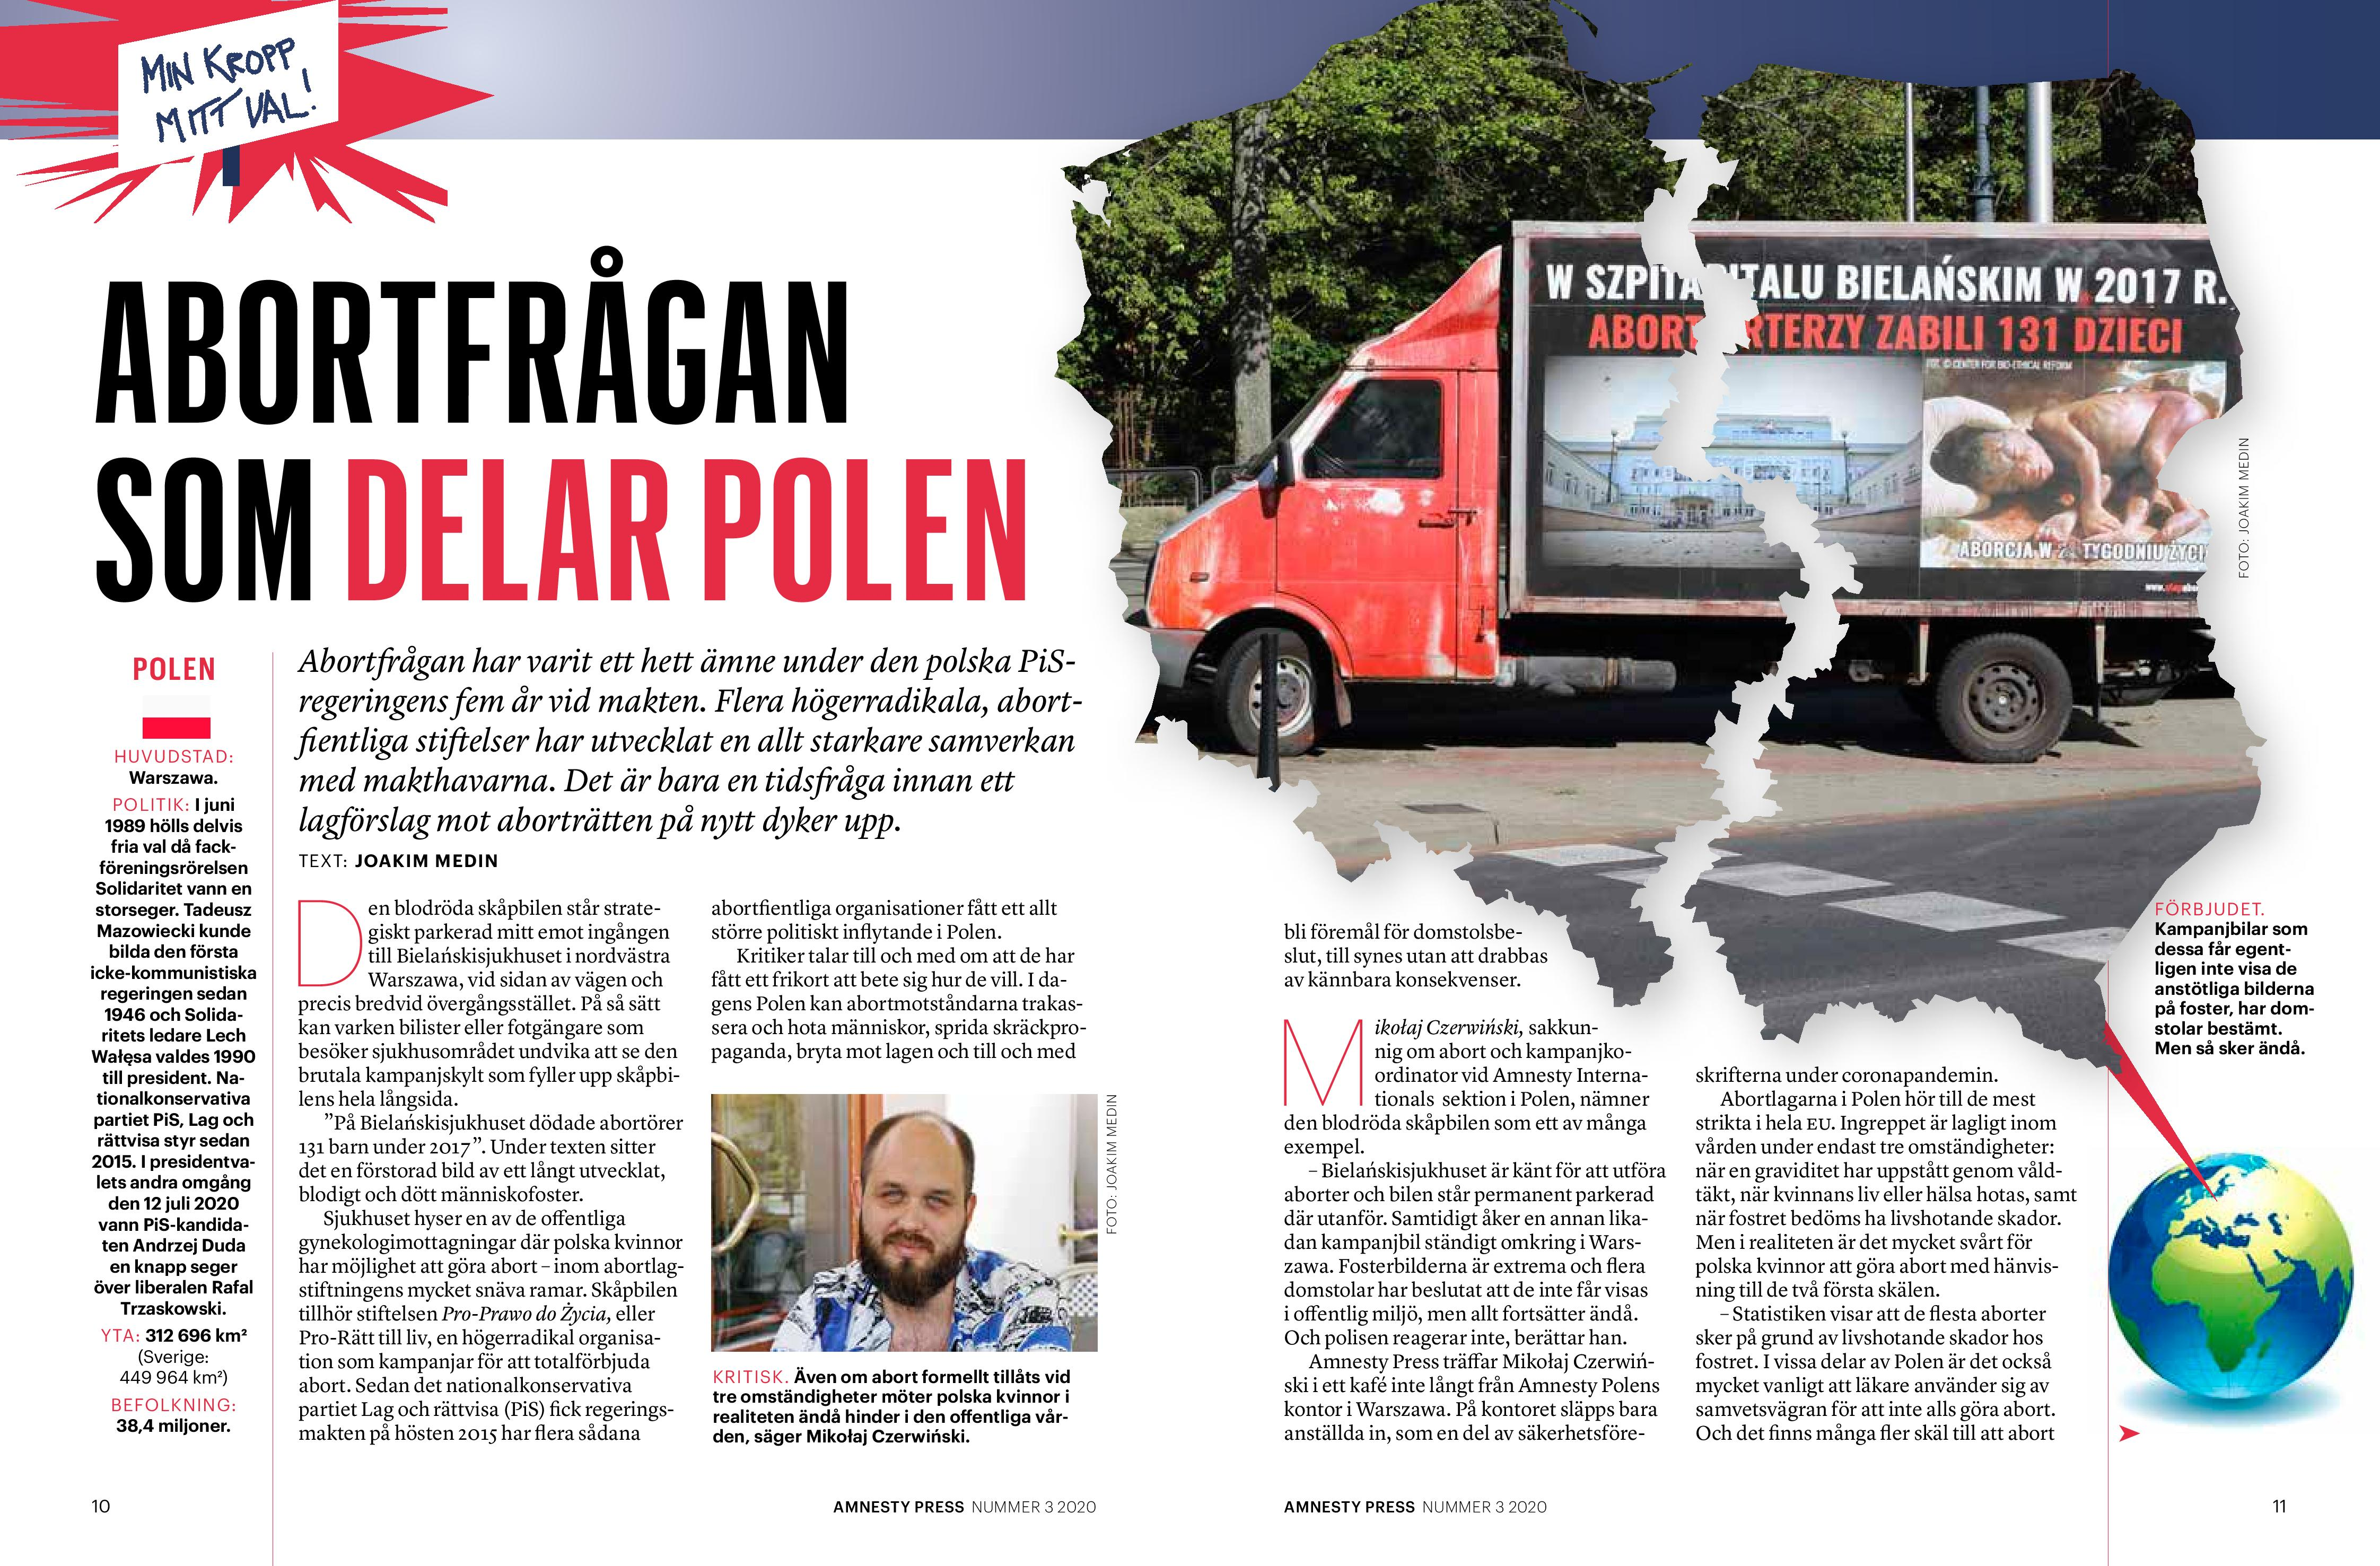 Polen, Amnesty Press sep 2020